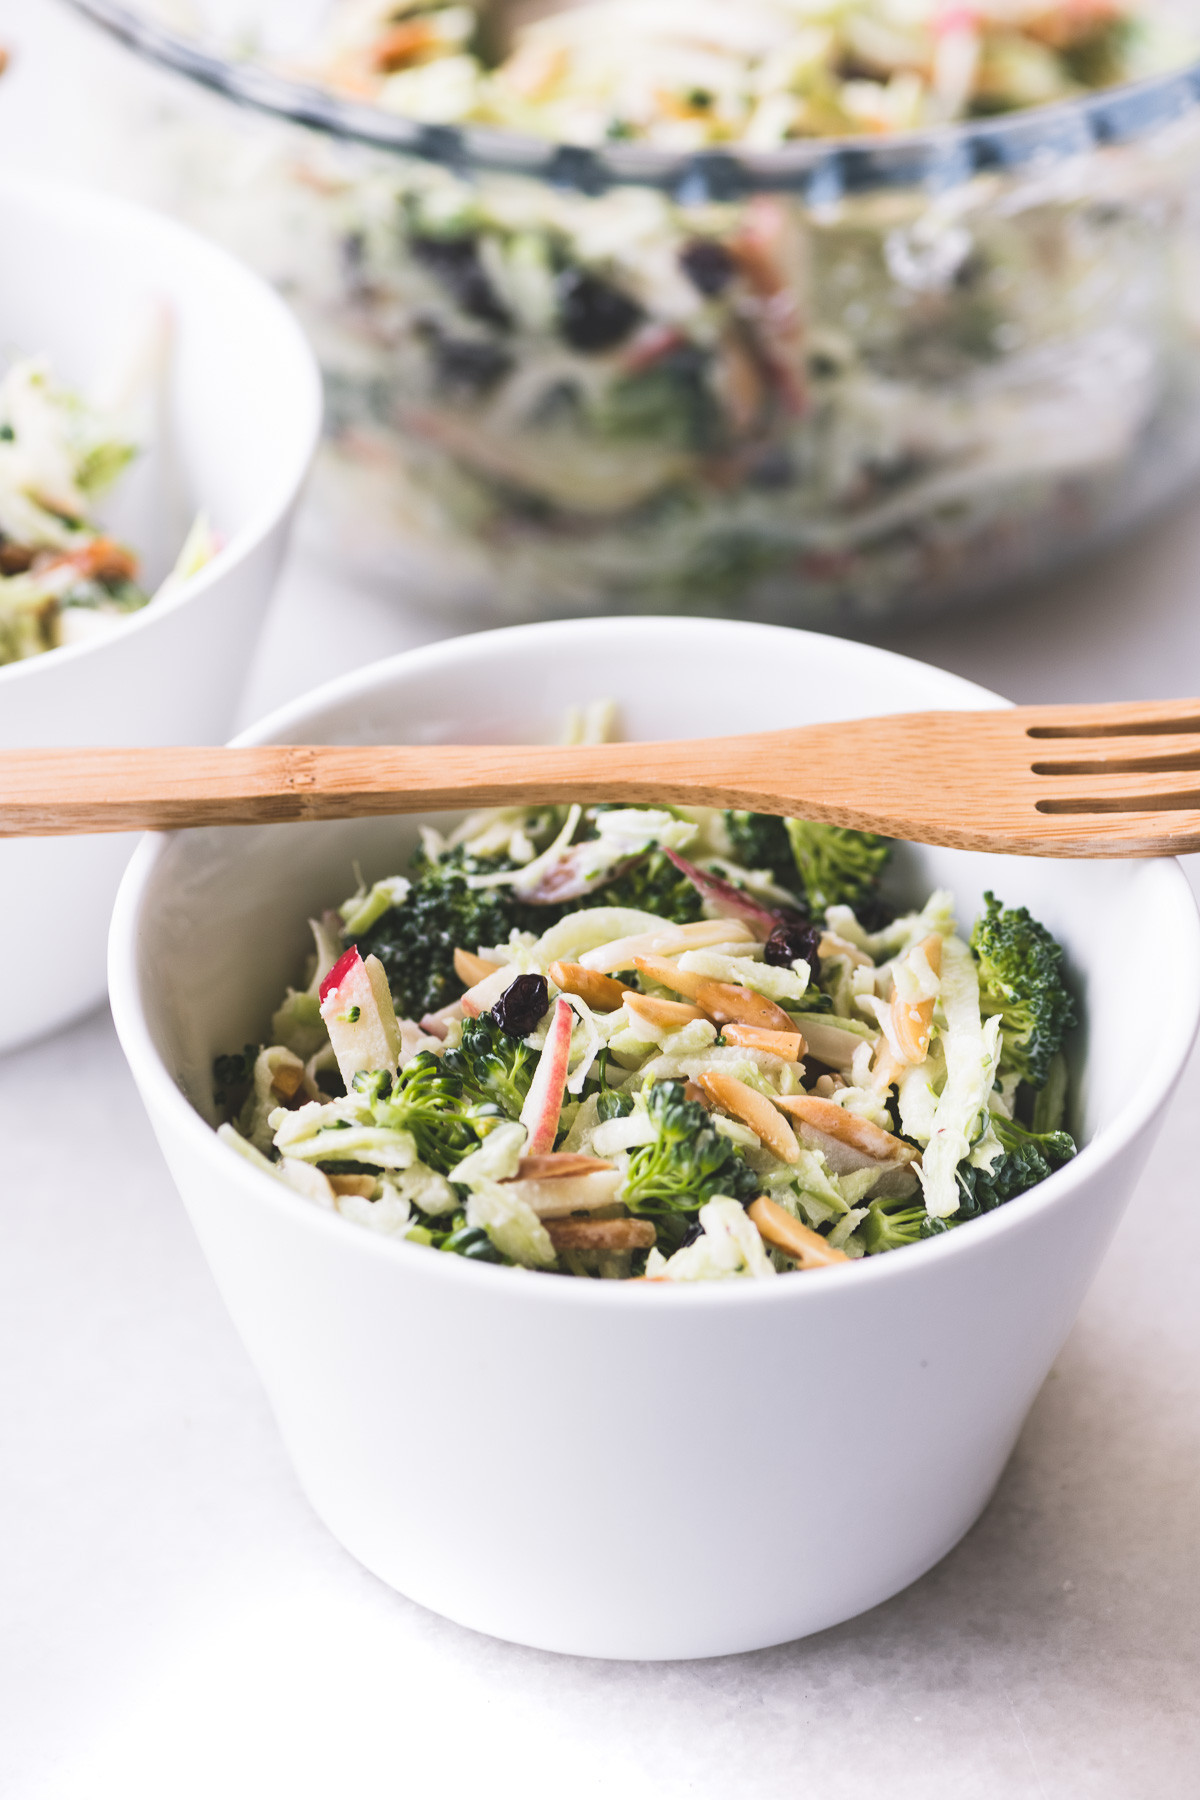 Broccoli Honeycrisp Slaw in white bowls